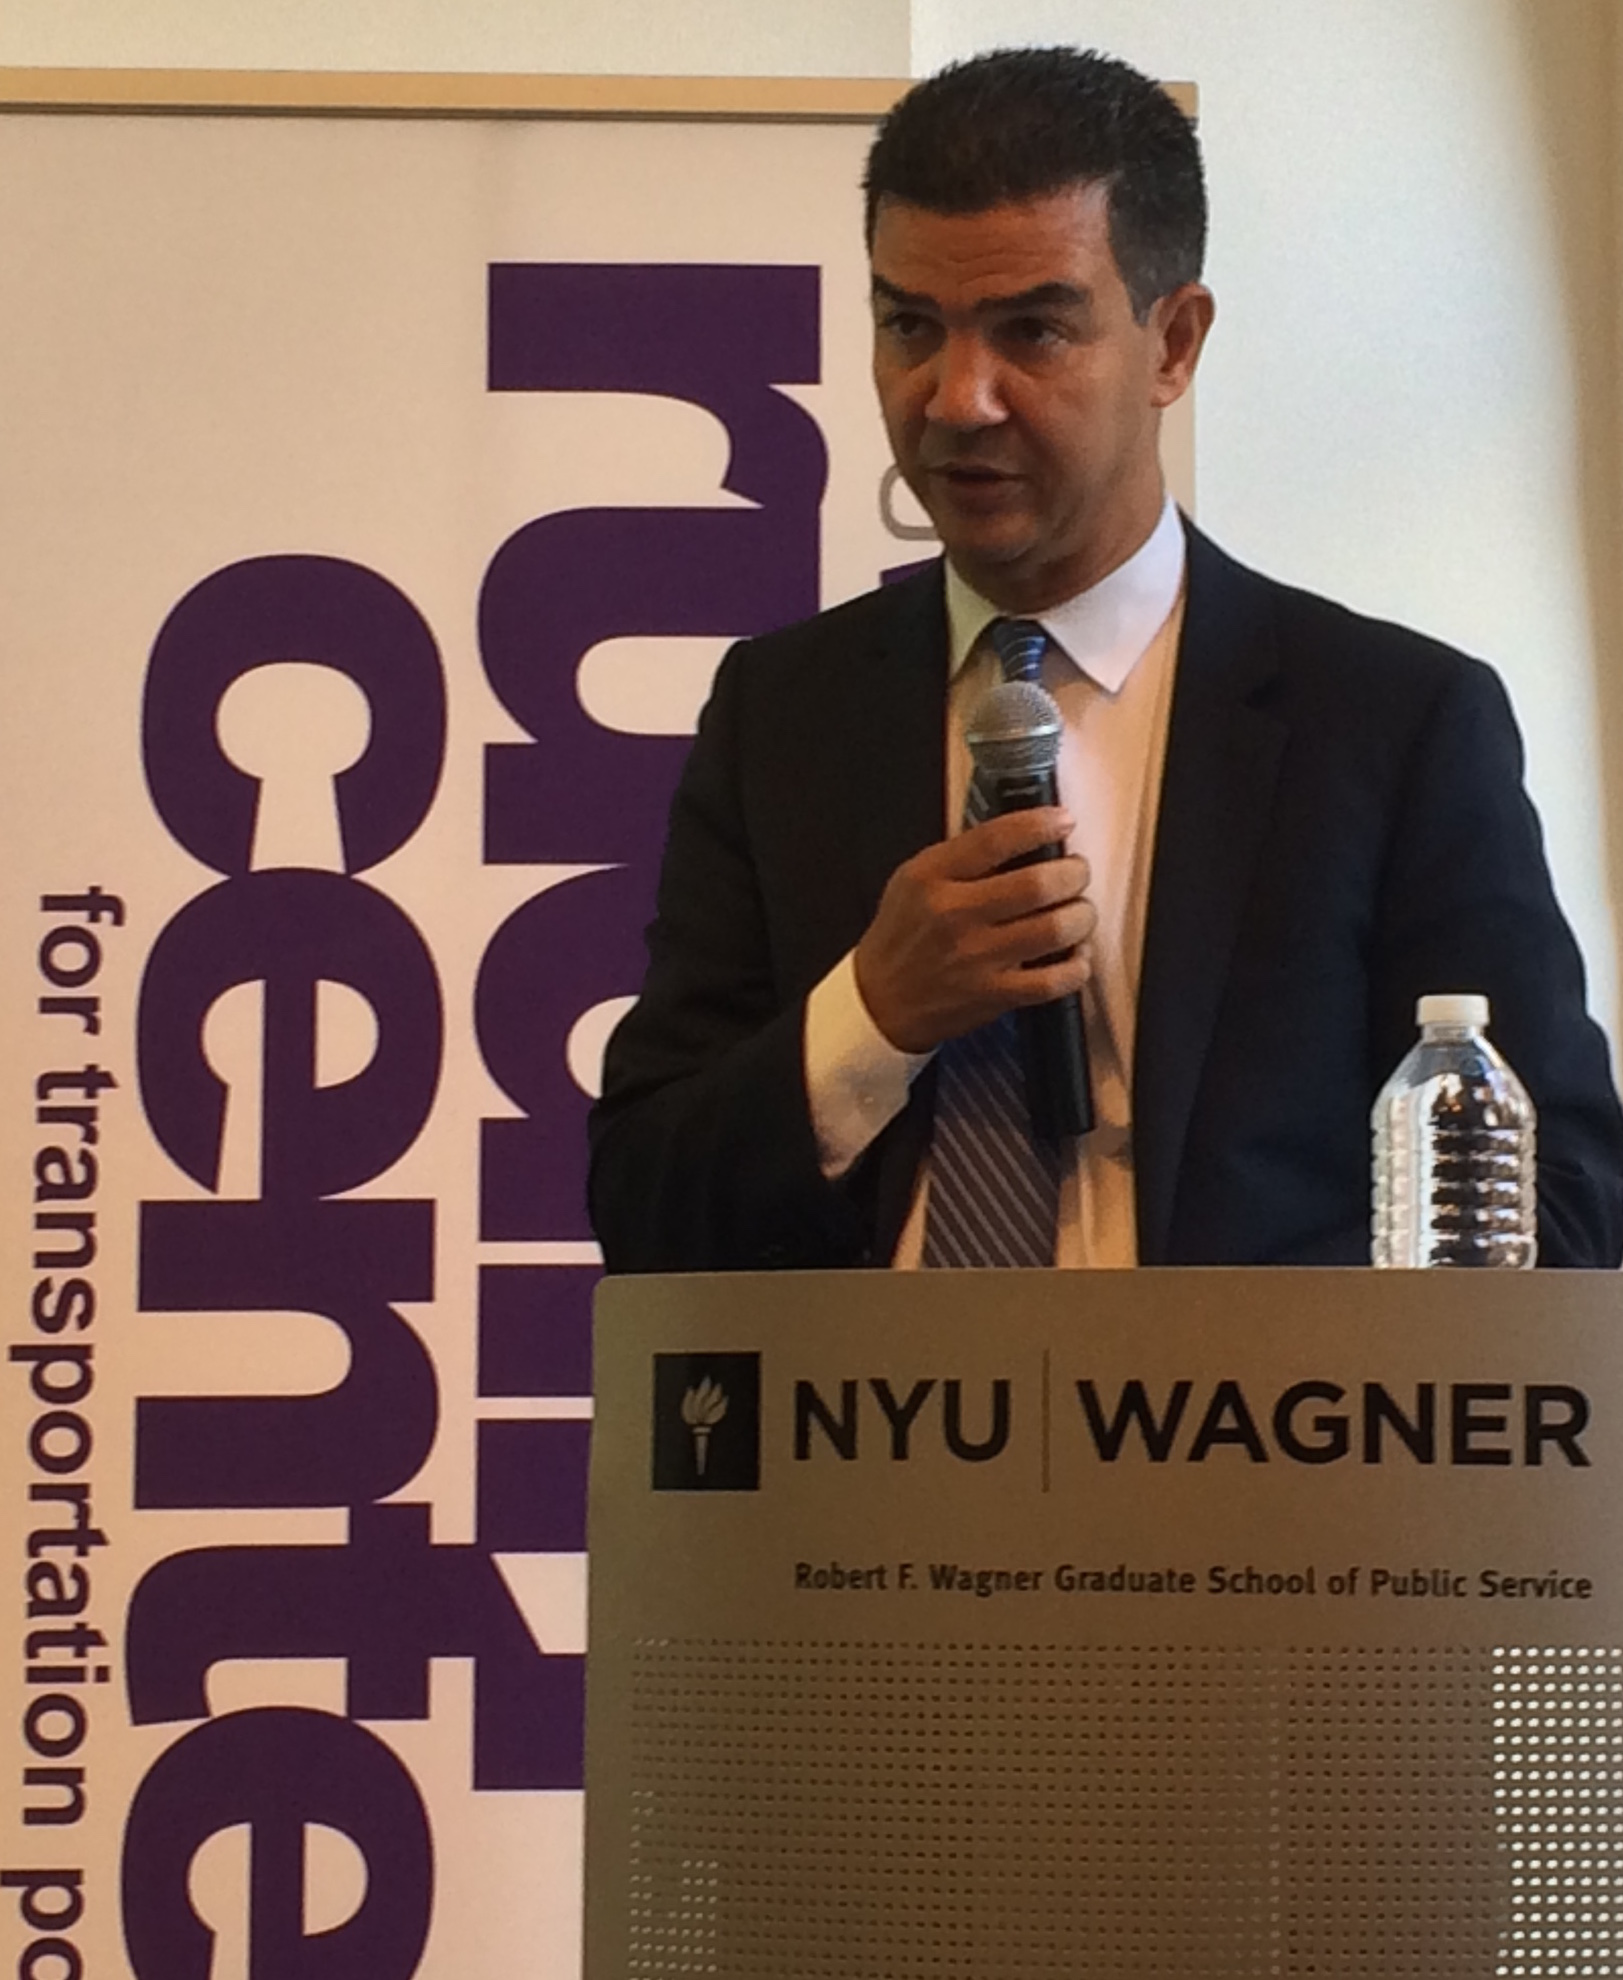 City Council Transportation Committee Chair Ydanis Rodriguez outlines his transportation vision this morning. Photo: Stephen Miller